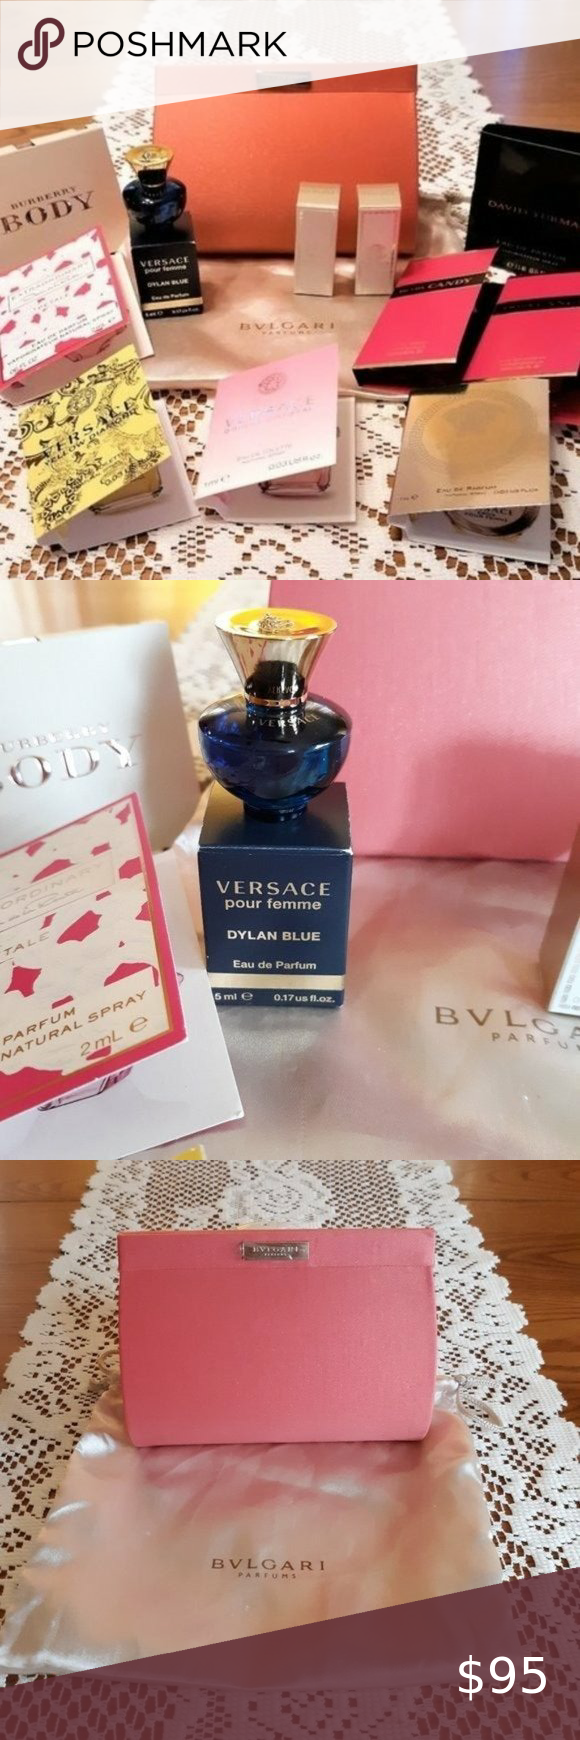 High End Luxury Bundle Sophisticated Mix In 2021 Versace Purses Mini Fragrance Prada Candy